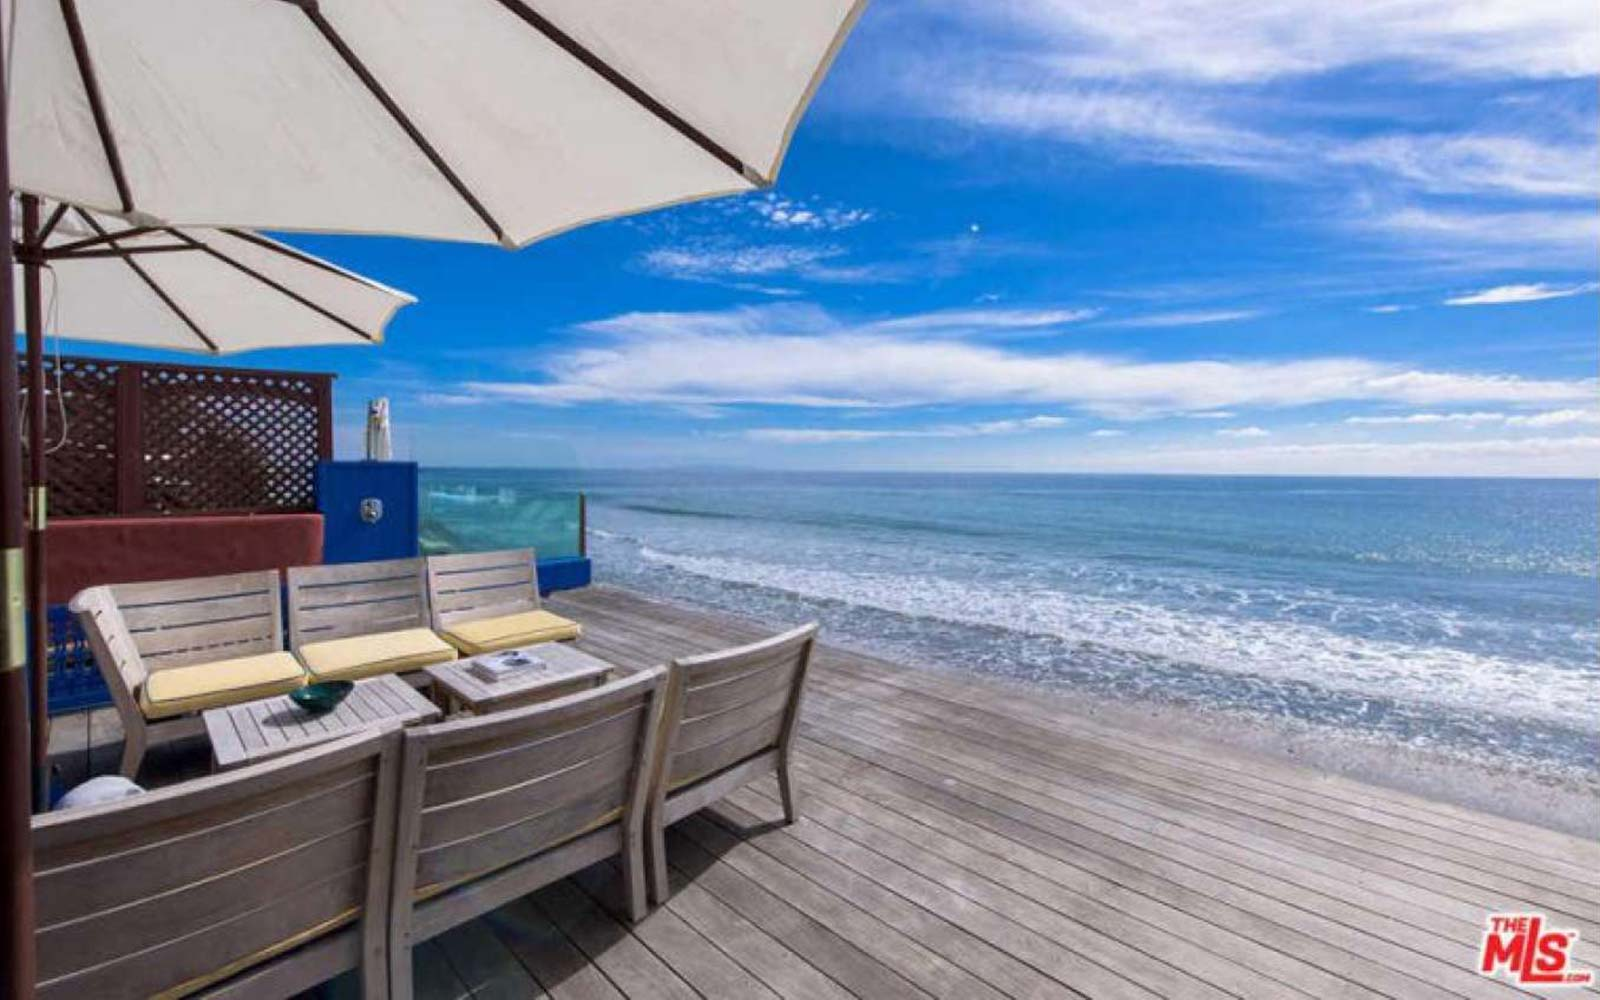 Sting's Malibu vacation rental